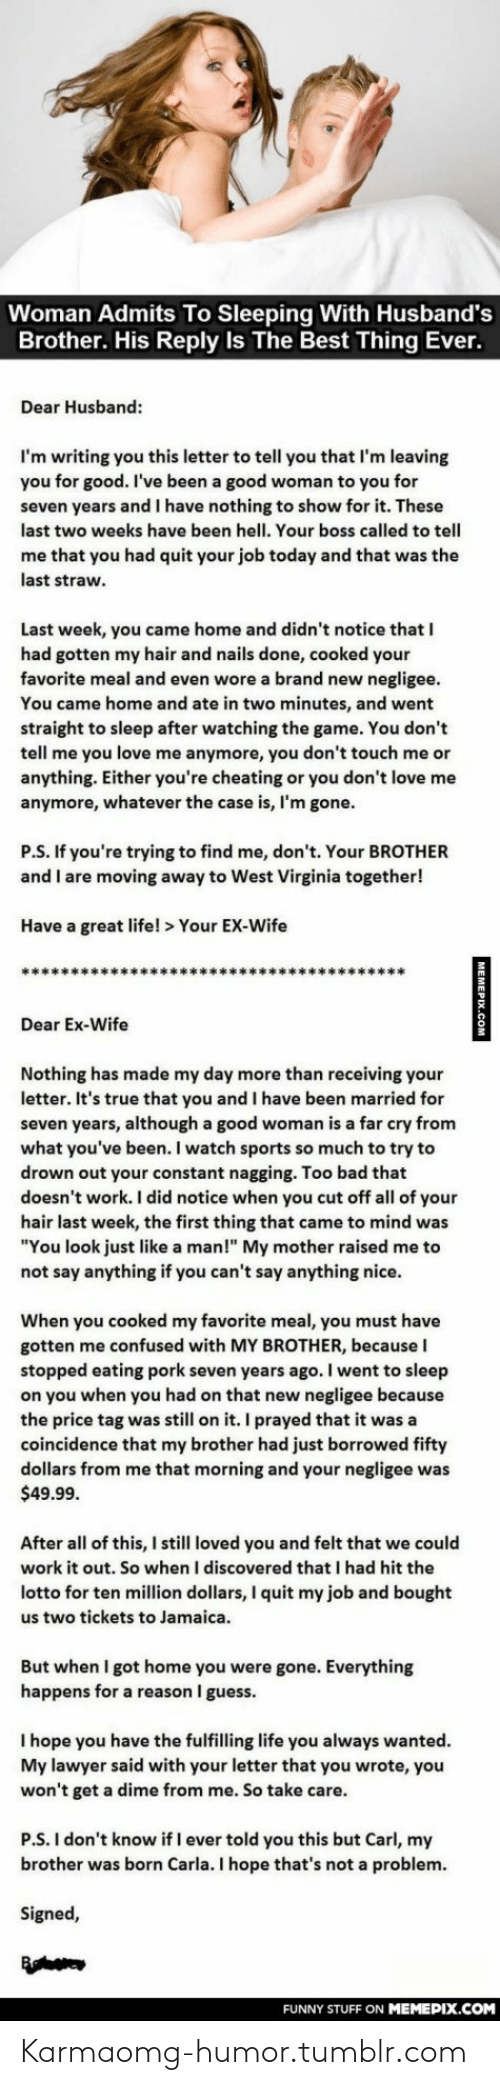 """Borrowed: Woman Admits To Sleeping With Husband's  Brother. His Reply Is The Best Thing Ever.  Dear Husband:  I'm writing you this letter to tell you that I'm leaving  you for good. I've been a good woman to you for  seven years and I have nothing to show for it. These  last two weeks have been hell. Your boss called to tell  me that you had quit your job today and that was the  last straw.  Last week, you came home and didn't notice that I  had gotten my hair and nails done, cooked your  favorite meal and even wore a brand new negligee.  You came home and ate in two minutes, and went  straight to sleep after watching the game. You don't  tell me you love me anymore, you don't touch me or  anything. Either you're cheating or you don't love me  anymore, whatever the case is, I'm gone.  P.S. If you're trying to find me, don't. Your BROTHER  and I are moving away to West Virginia together!  Have a great life! > Your EX-Wife  Dear Ex-Wife  Nothing has made my day more than receiving your  letter. It's true that you and I have been married for  seven years, although a good woman is a far cry from  what you've been. I watch sports so much to try to  drown out your constant nagging. Too bad that  doesn't work. I did notice when you cut off all of your  hair last week, the first thing that came to mind was  """"You look just like a man!"""" My mother raised me to  not say anything if you can't say anything nice.  When you cooked my favorite meal, you must have  gotten me confused with MY BROTHER, because I  stopped eating pork seven years ago. I went to sleep  on you when you had on that new negligee because  the price tag was still on it. I prayed that it was a  coincidence that my brother had just borrowed fifty  dollars from me that morning and your negligee was  $49.99.  After all of this, I still loved you and felt that we could  work it out. So when I discovered that I had hit the  lotto for ten million dollars, I quit my job and bought  us two tickets to Jamaica.  But when"""